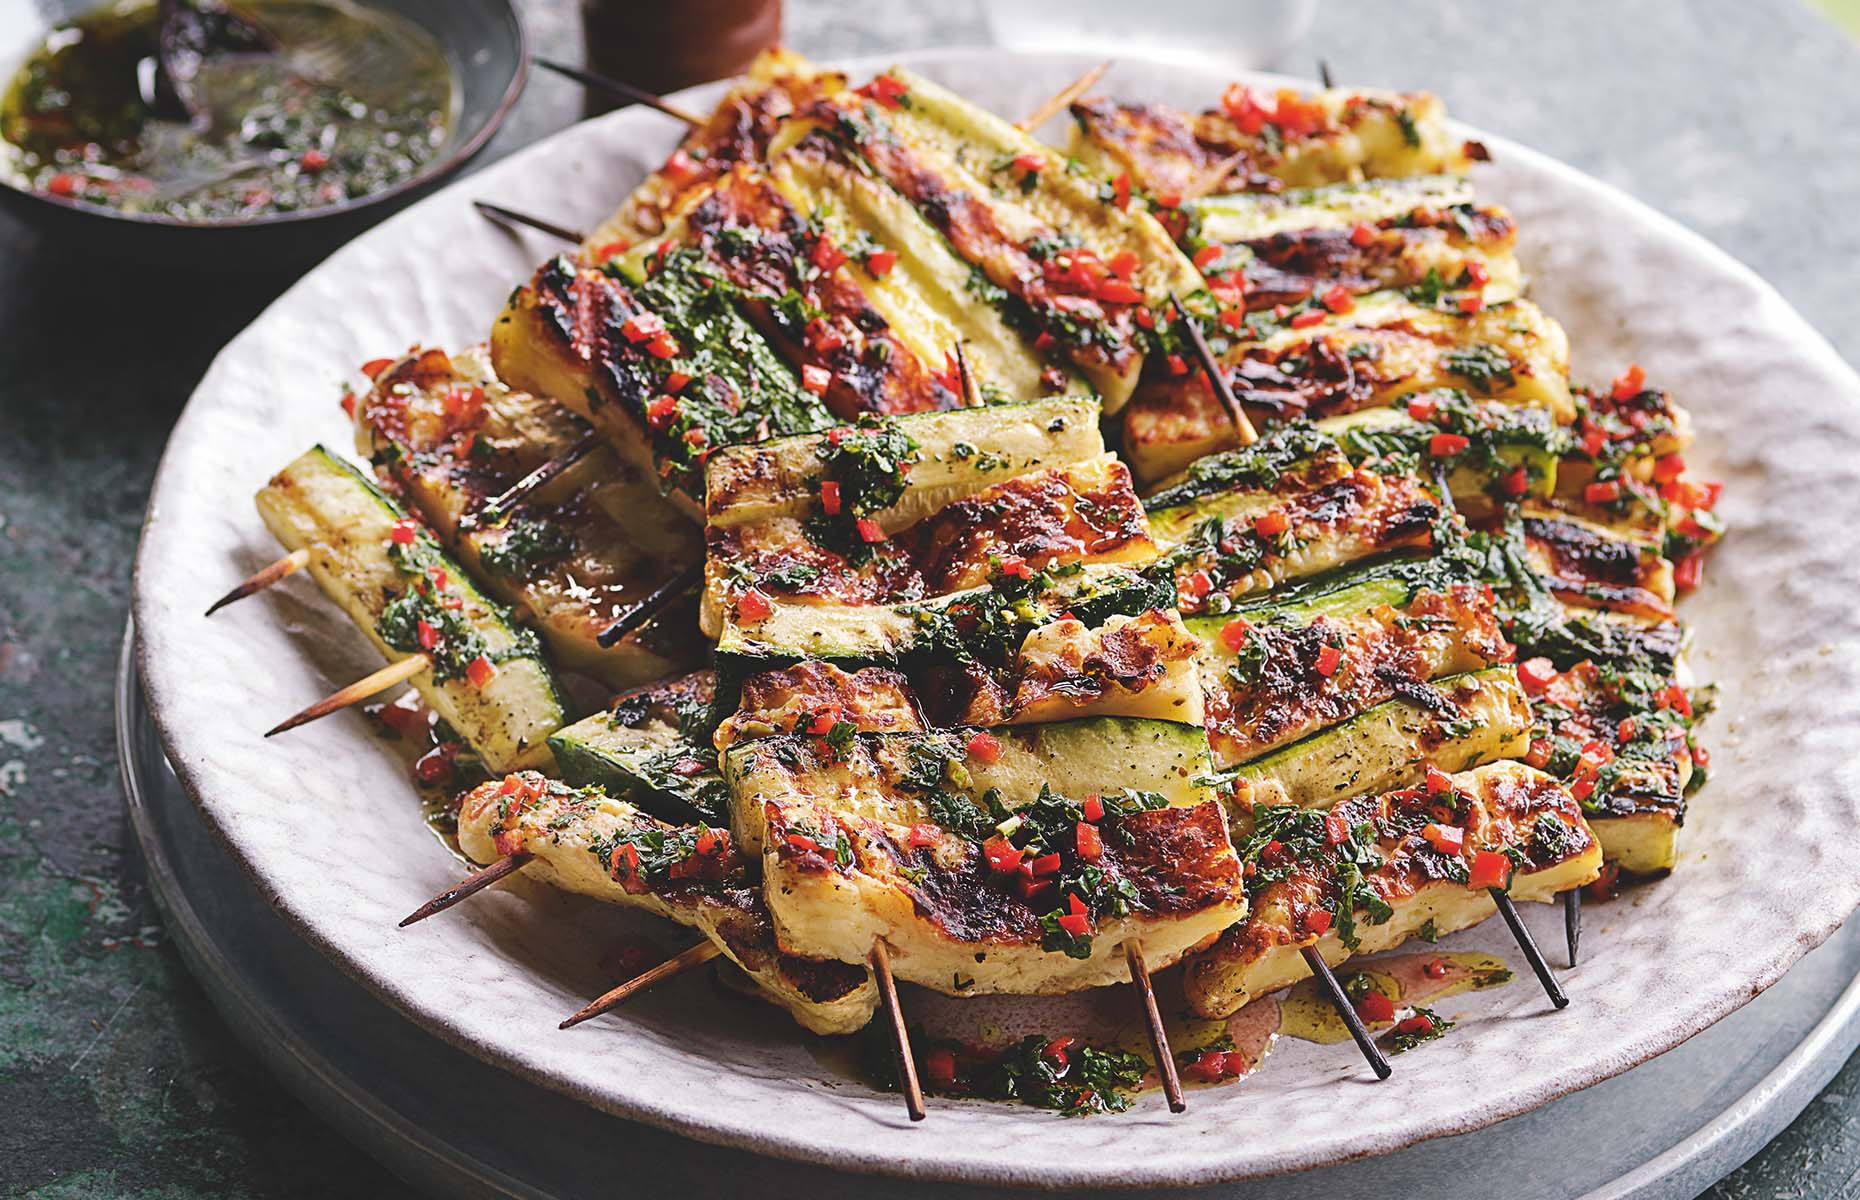 Courgette and halloumi skewers from Tom Kerridge's Outdoor Cooking (Photography by Christian Barnett)